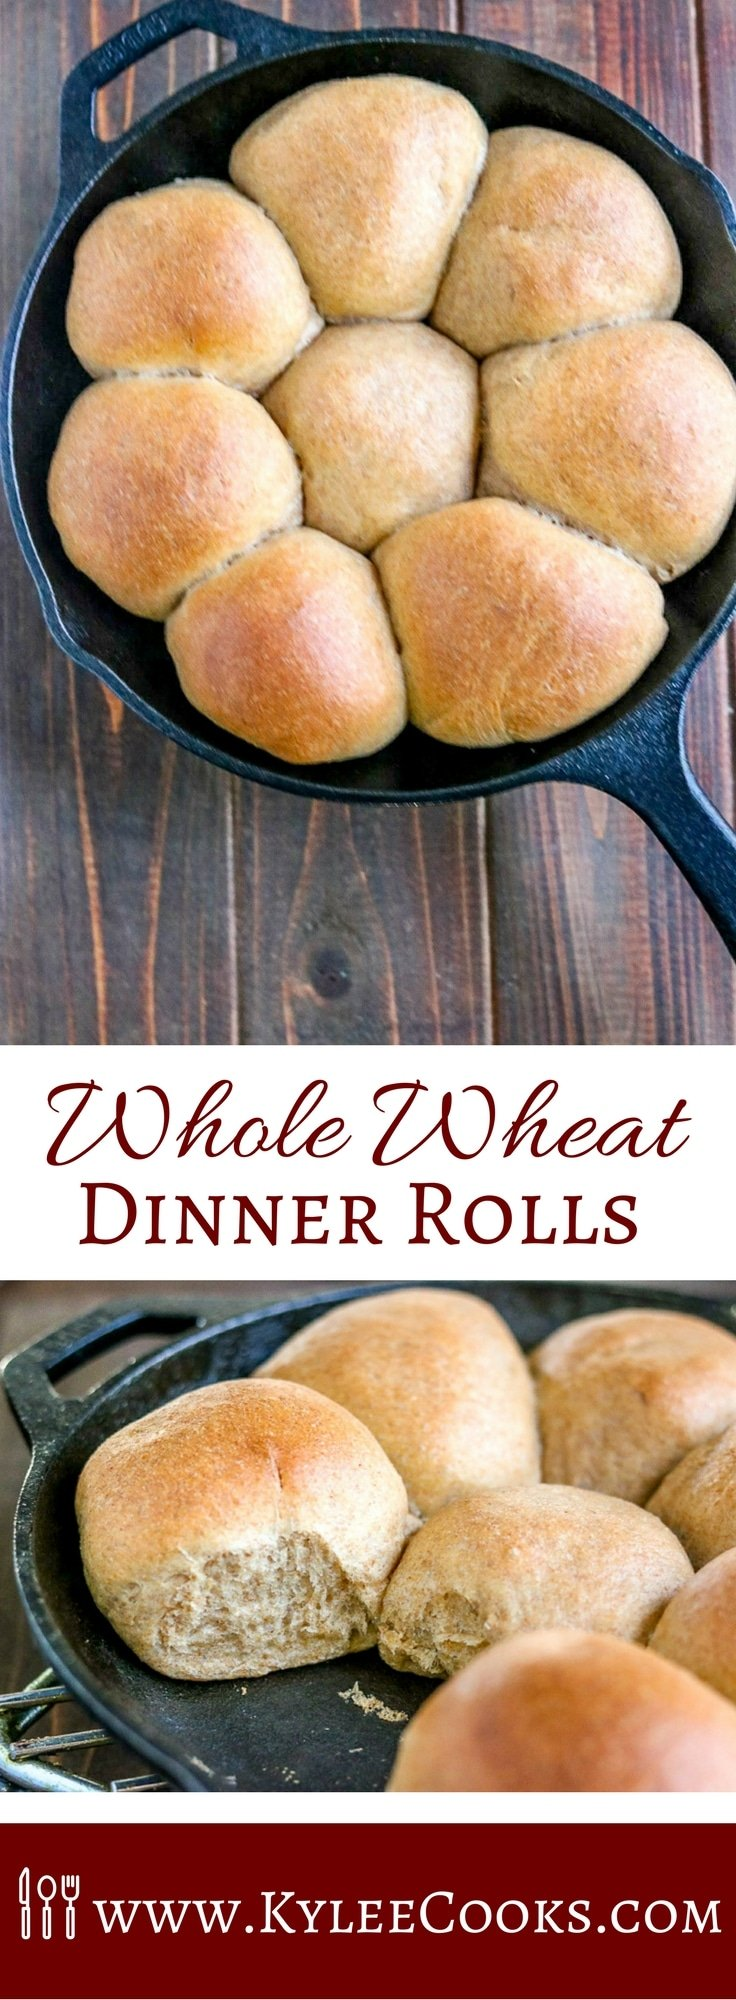 Quick and easy to make, these deliciously soft Whole Wheat Dinner Rolls make the perfect amount for your family! They make a hearty side to any dinner. Yum!